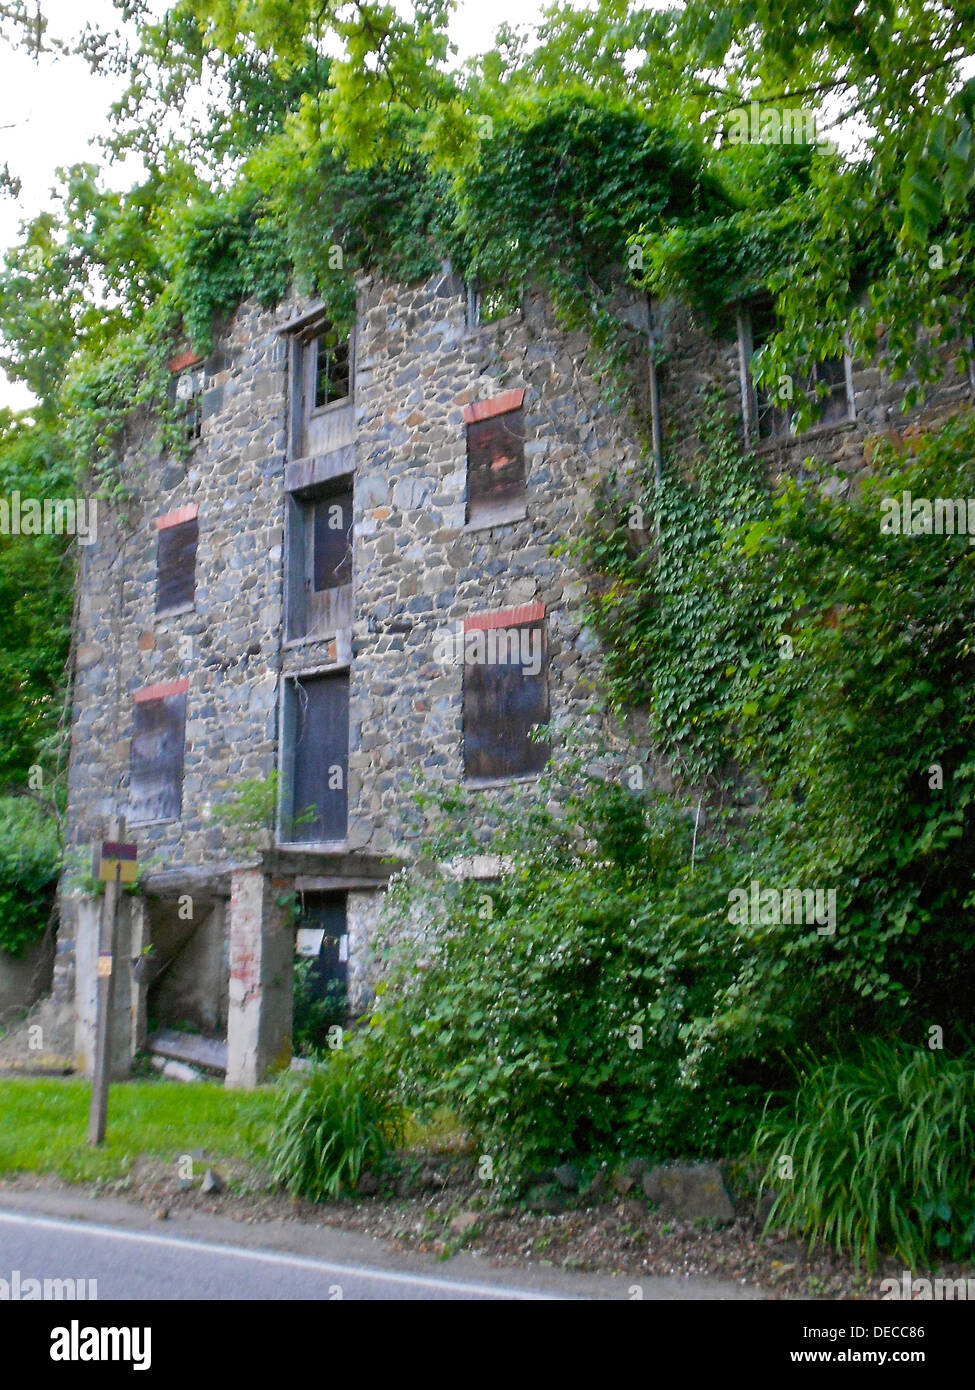 Mill on Franklintown Road in the Franklintown Historic District which was listed on the NRHP on November 11, 2001. - Stock Image